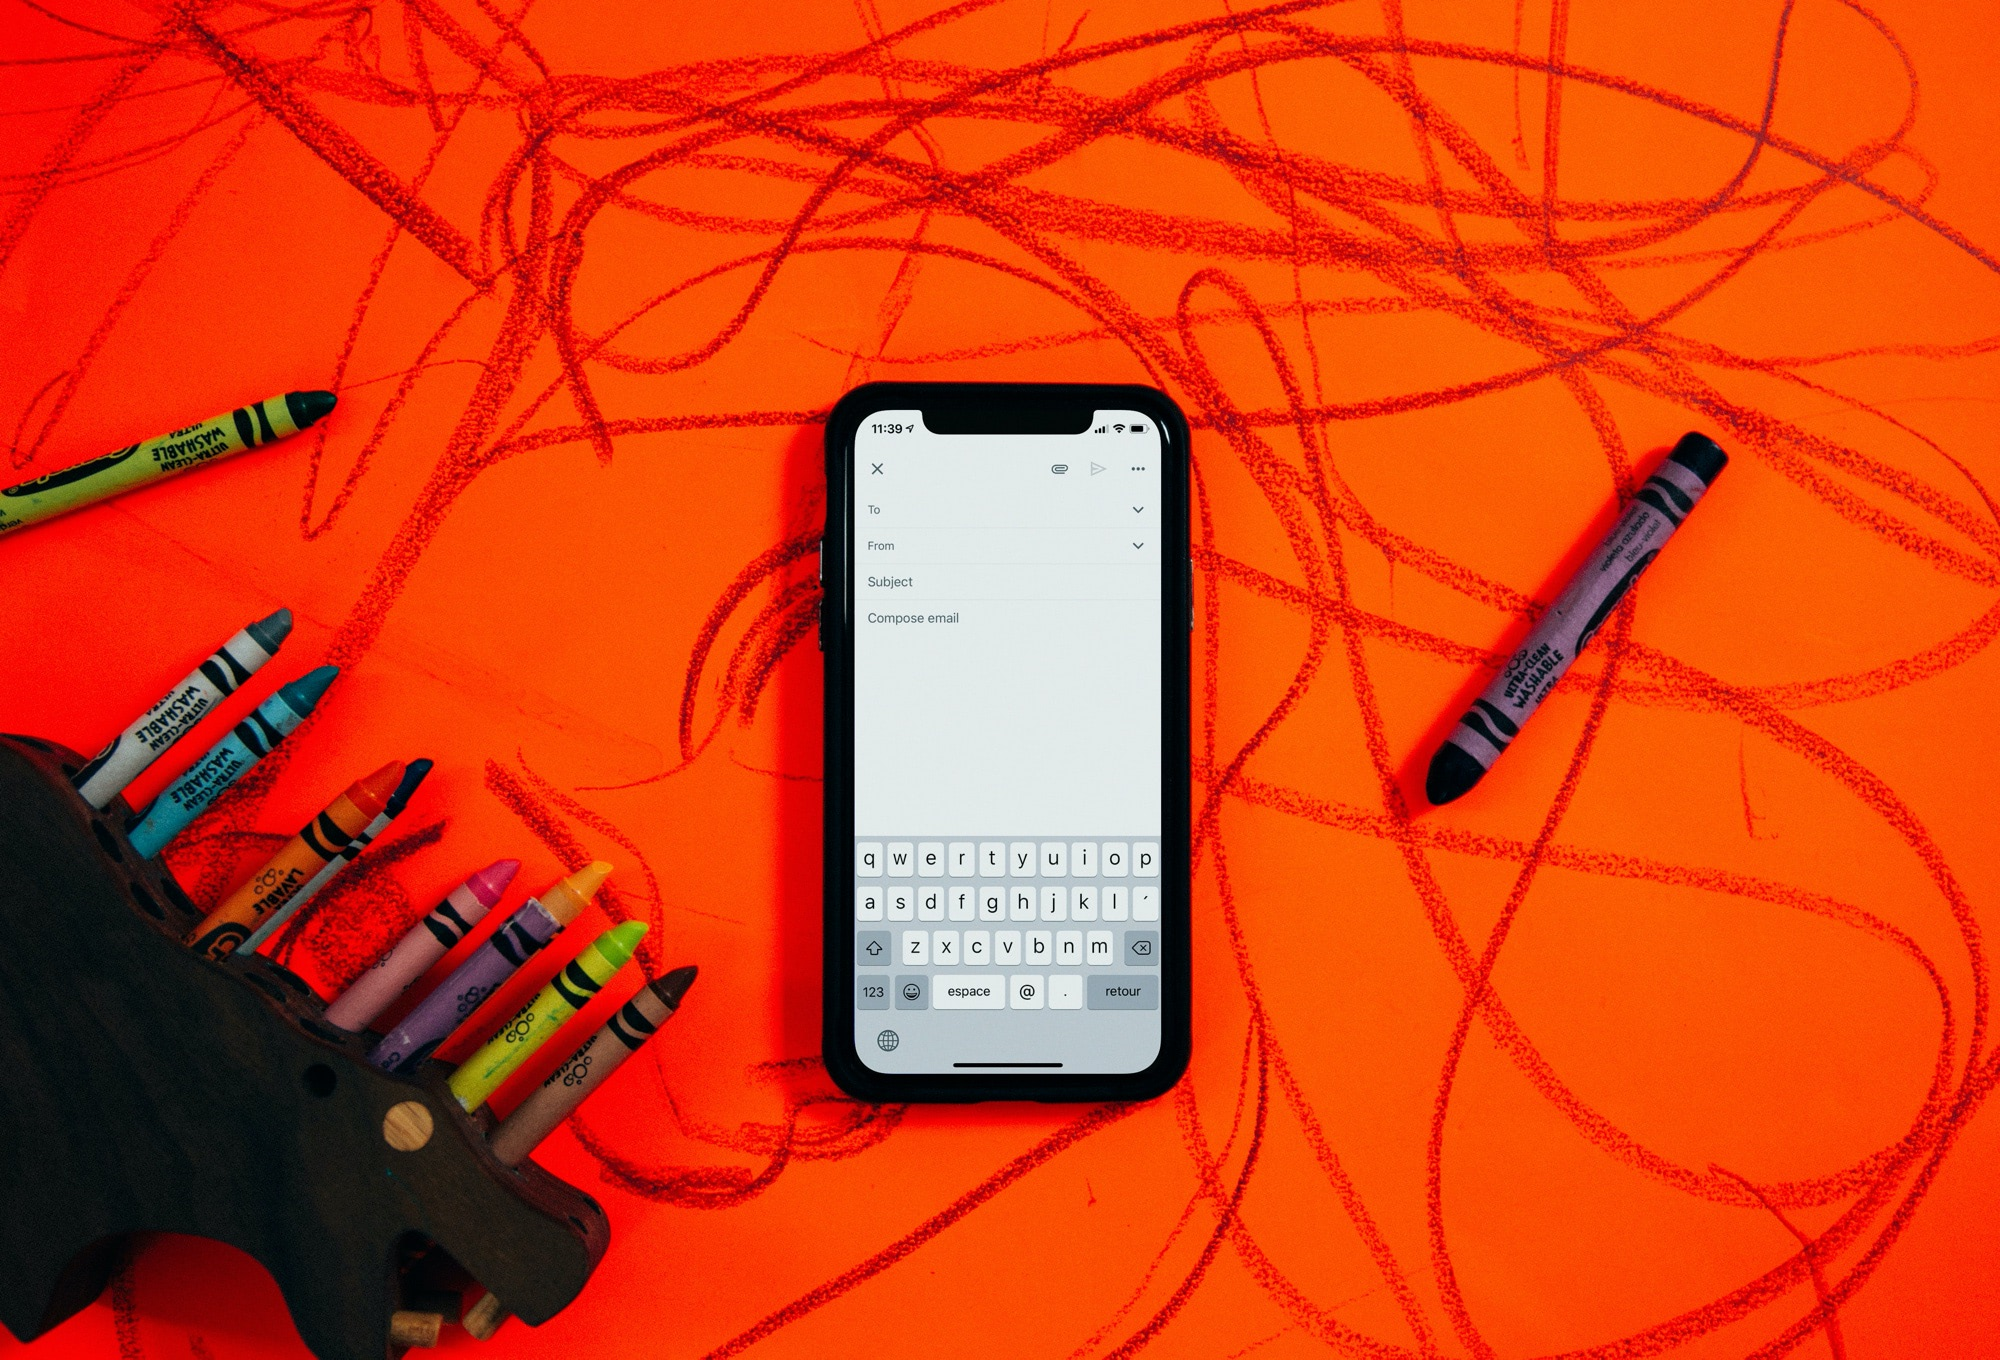 Phone showing an email app resting on a red table covered in crayon drawings